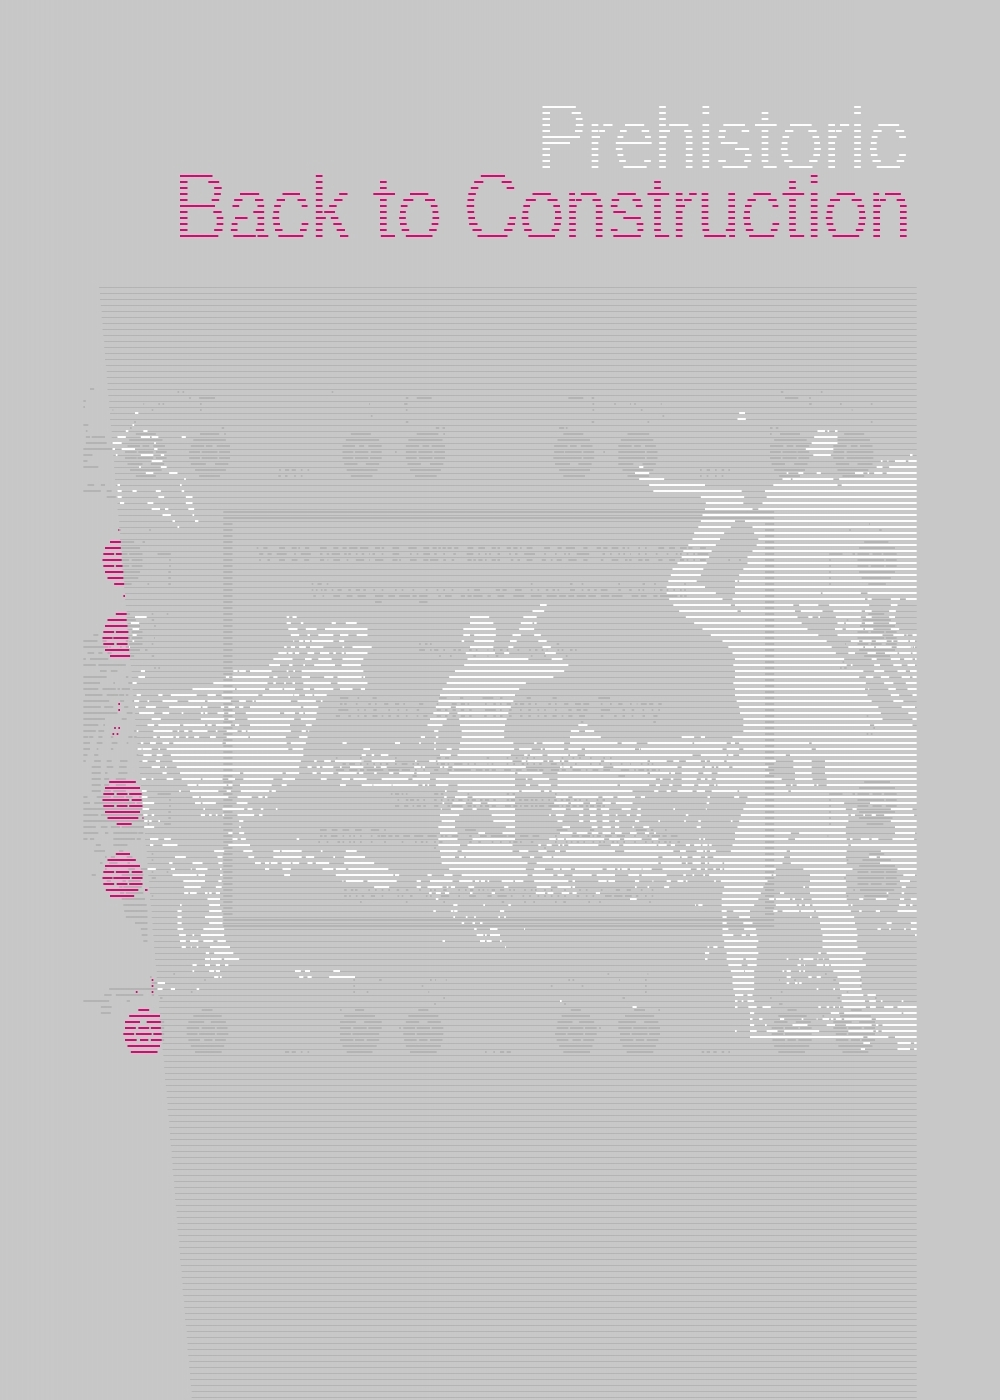 working title - prehistoric back to construction